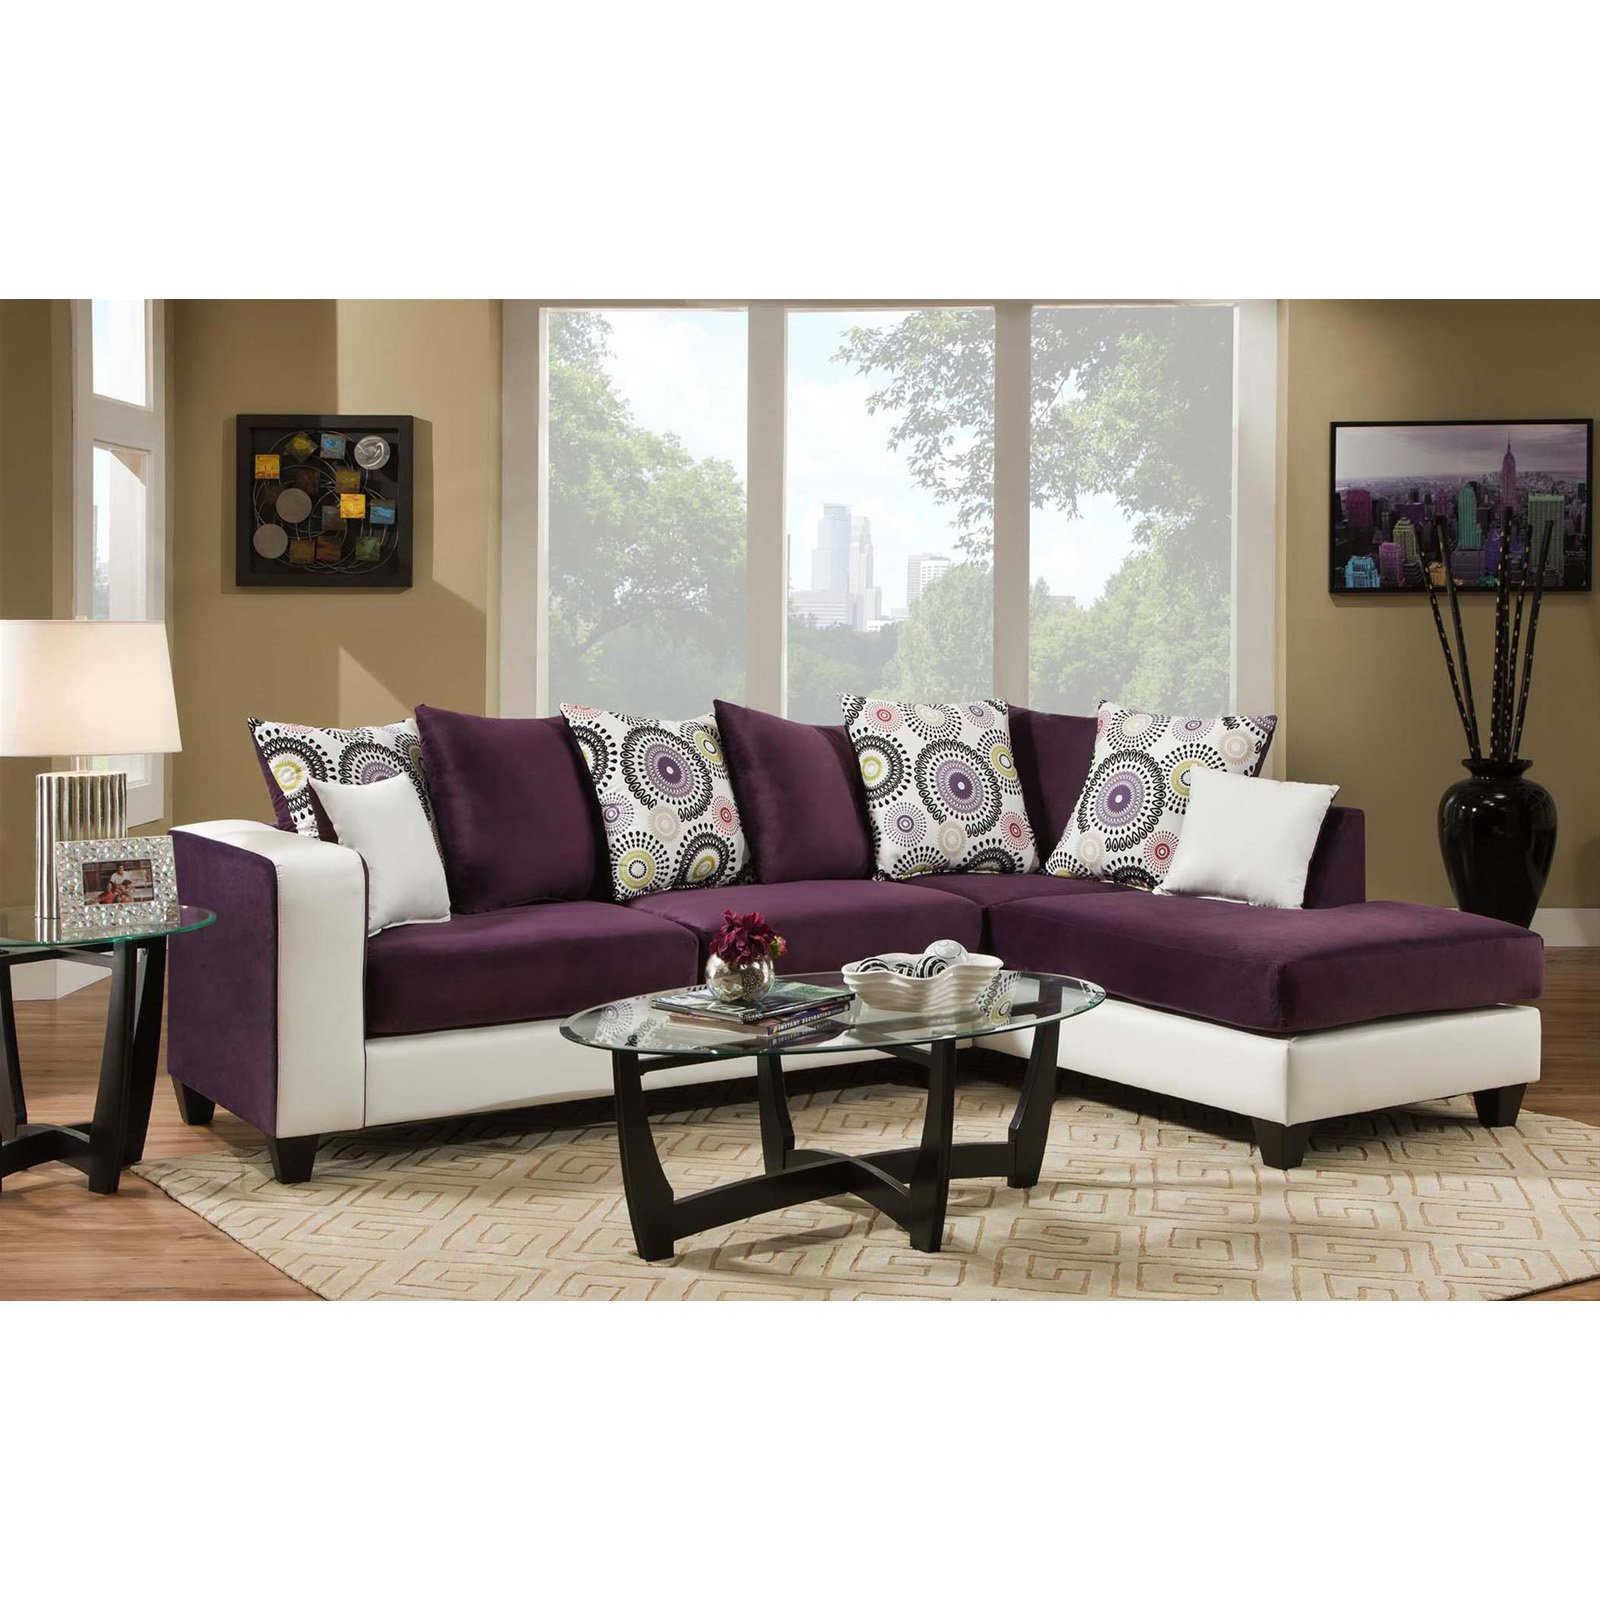 Chelsea Home Furniture Ame Sectional Sofa